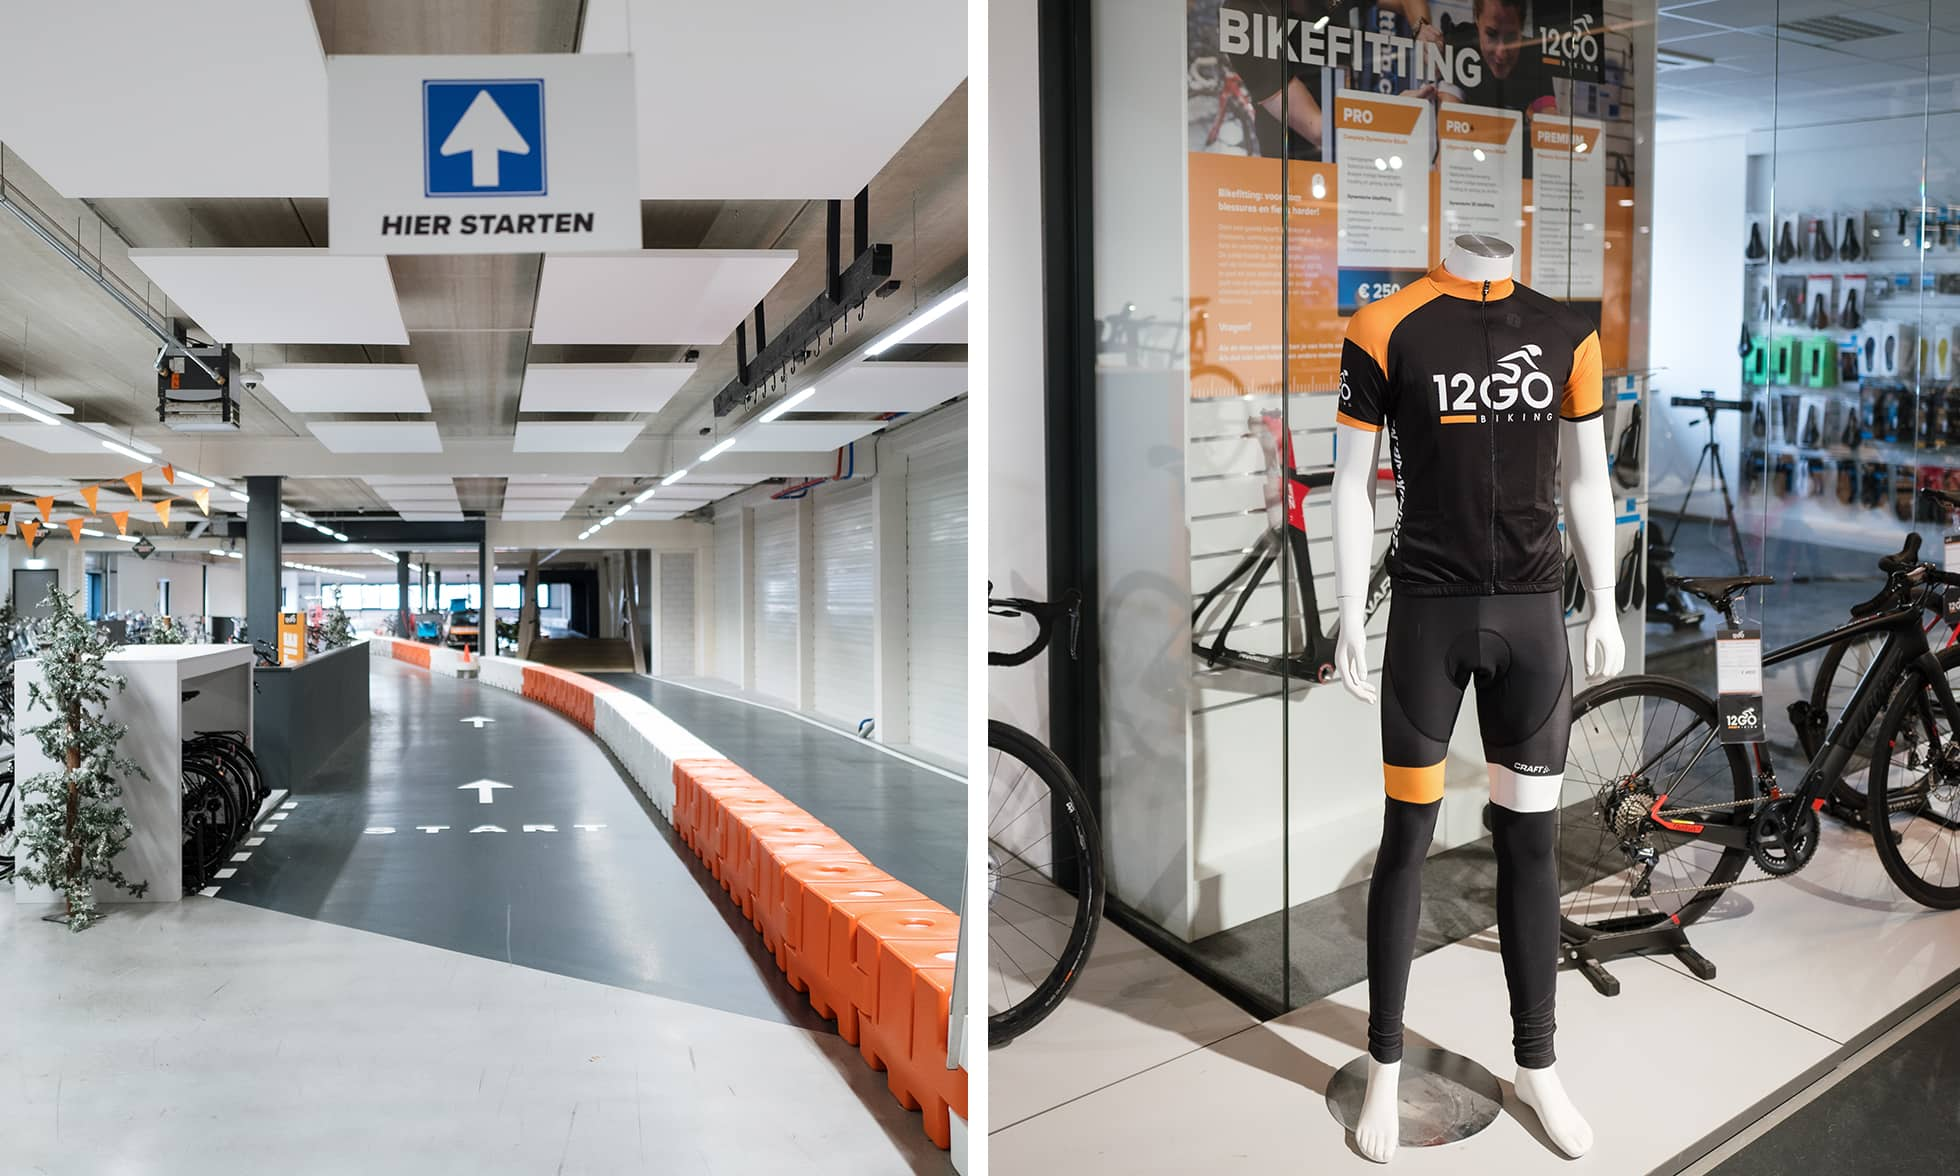 Left: start of test track in 12GO Biking shop Right: mannequin in black cycling outfit with 12GO Biking logo